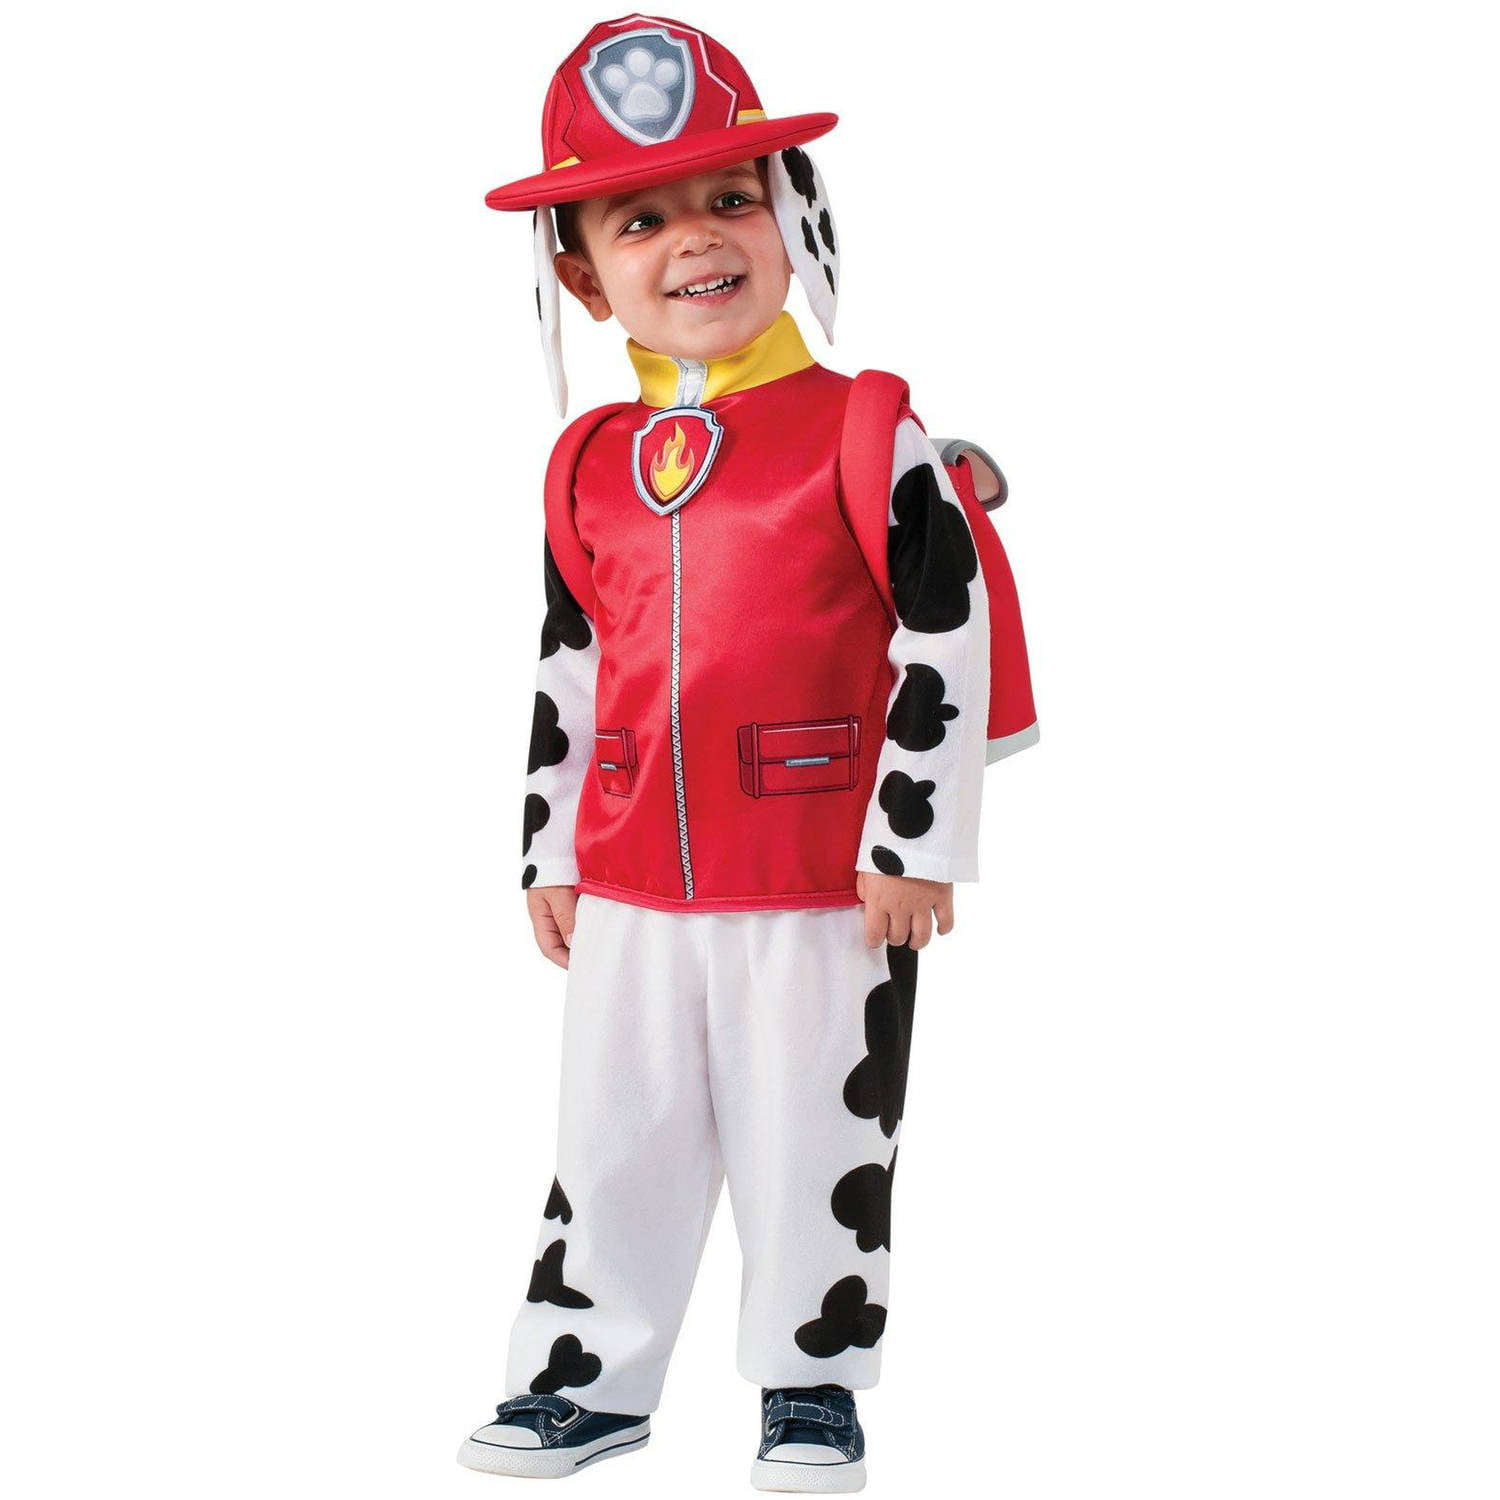 Halloween Costumes For Kidsboys.Paw Patrol Marshall Child Halloween Costume